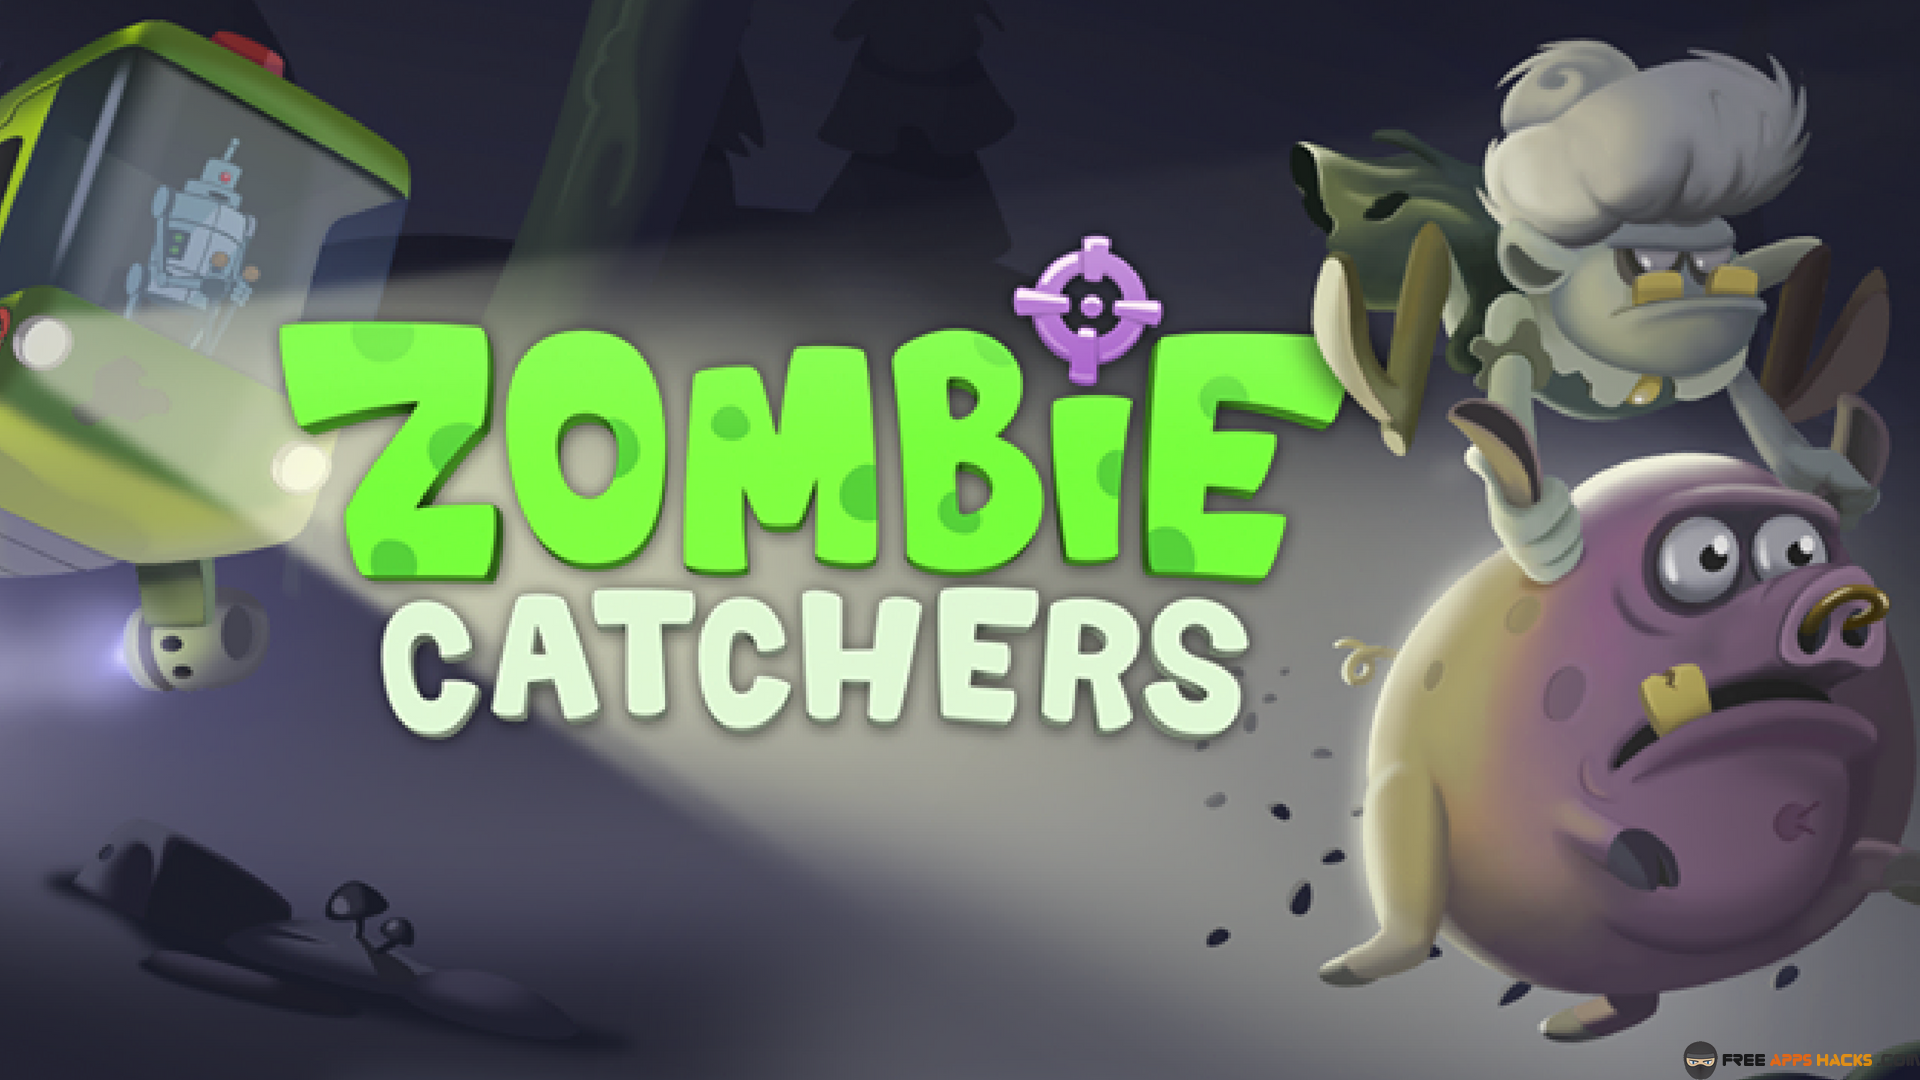 Zombie Catchers Modded Apk Unlimited Money Android App Free App Hacks